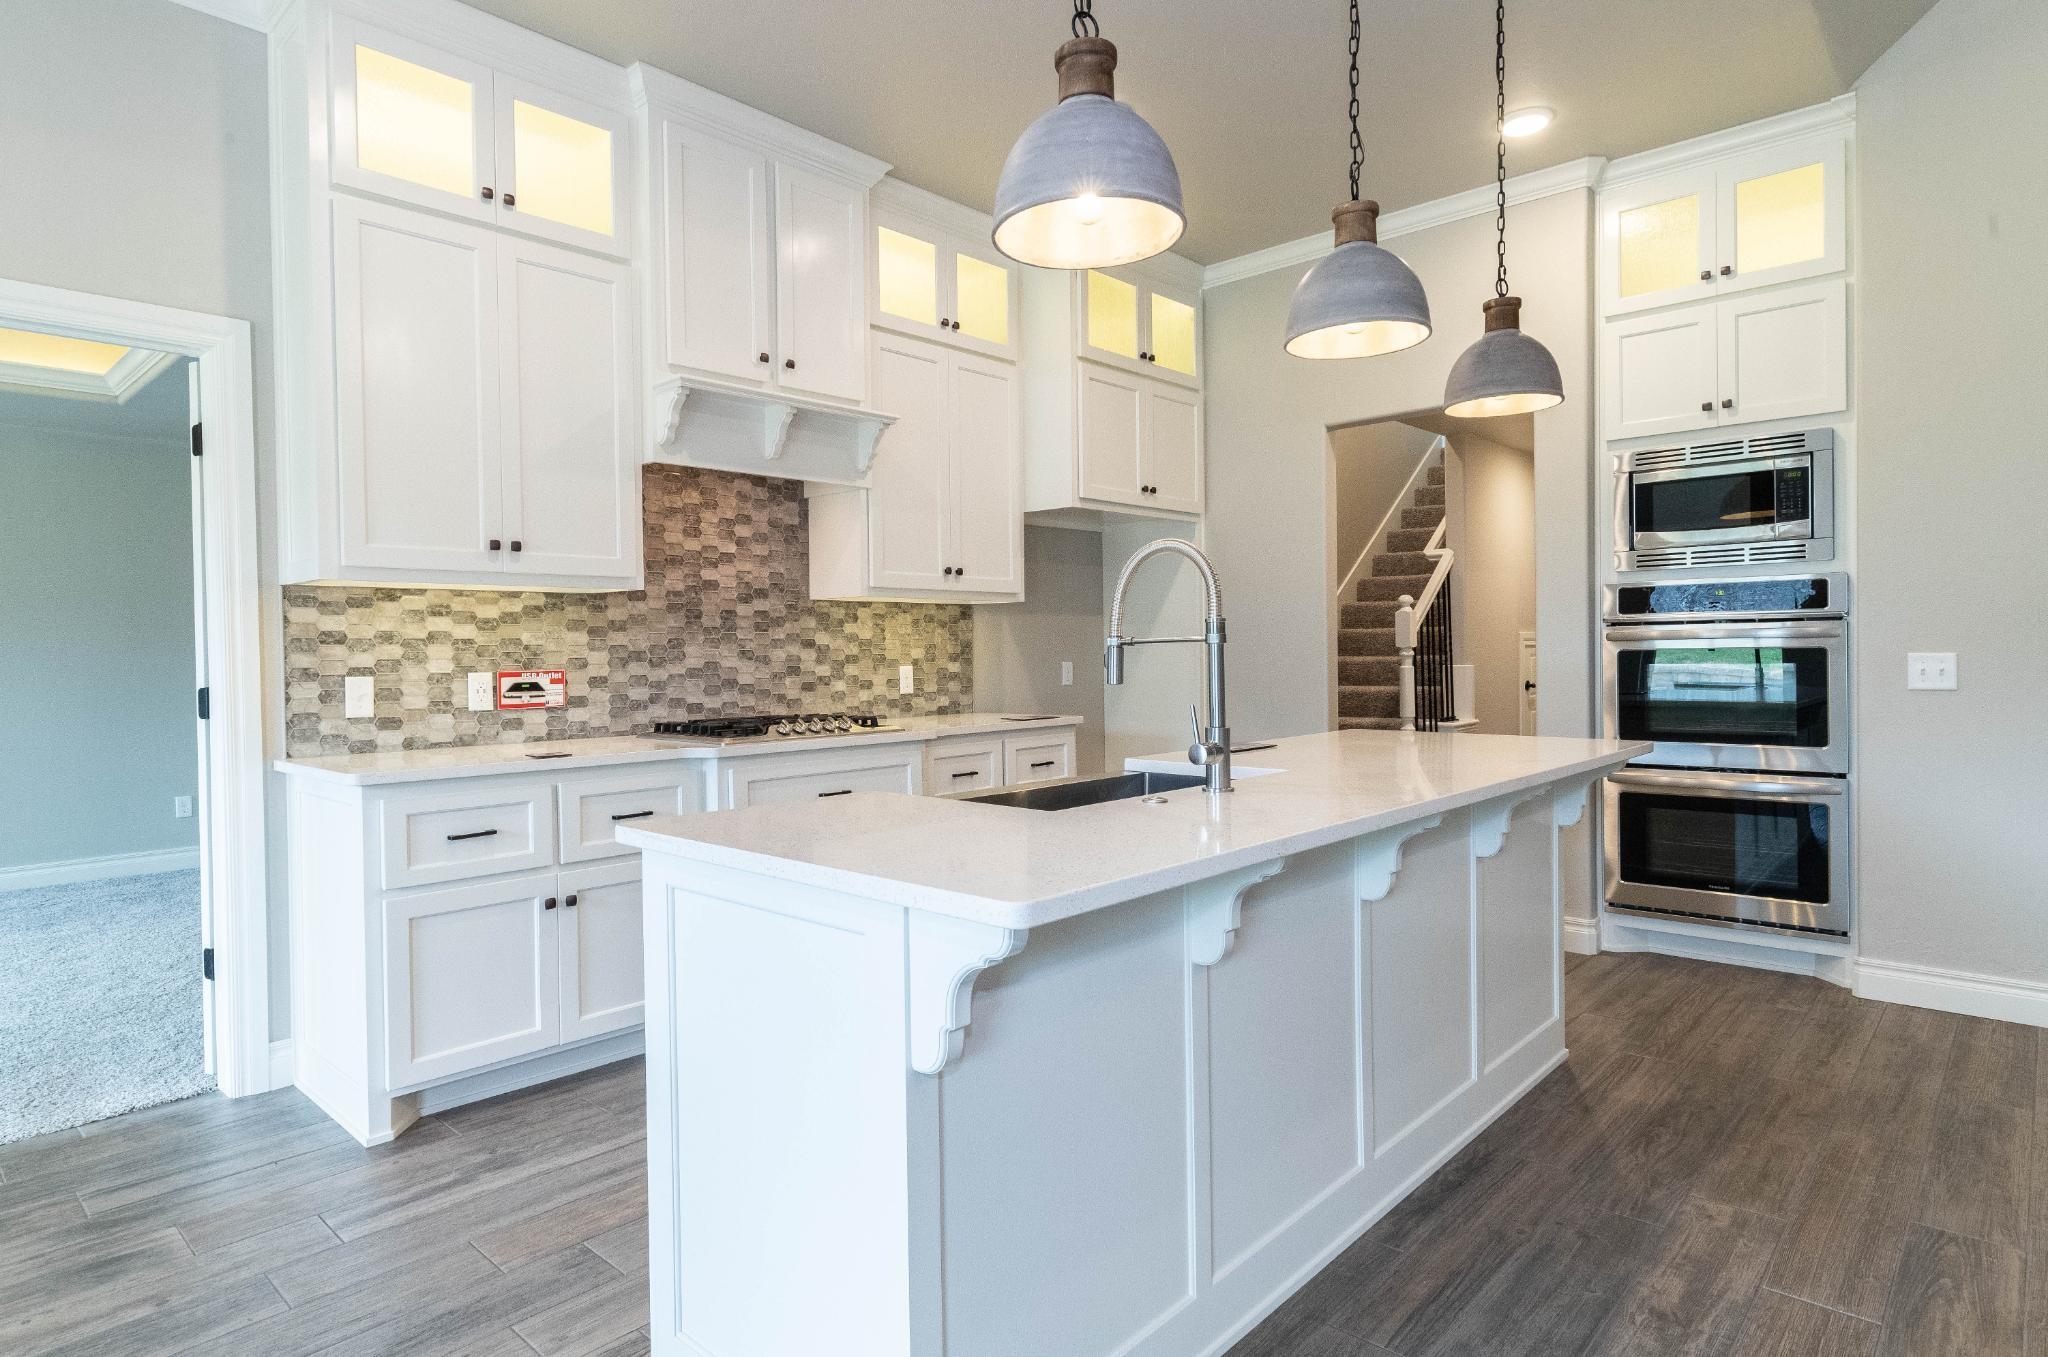 Kitchen featured in the Blue Spruce Bonus Room 1 Plus By Homes By Taber in Oklahoma City, OK